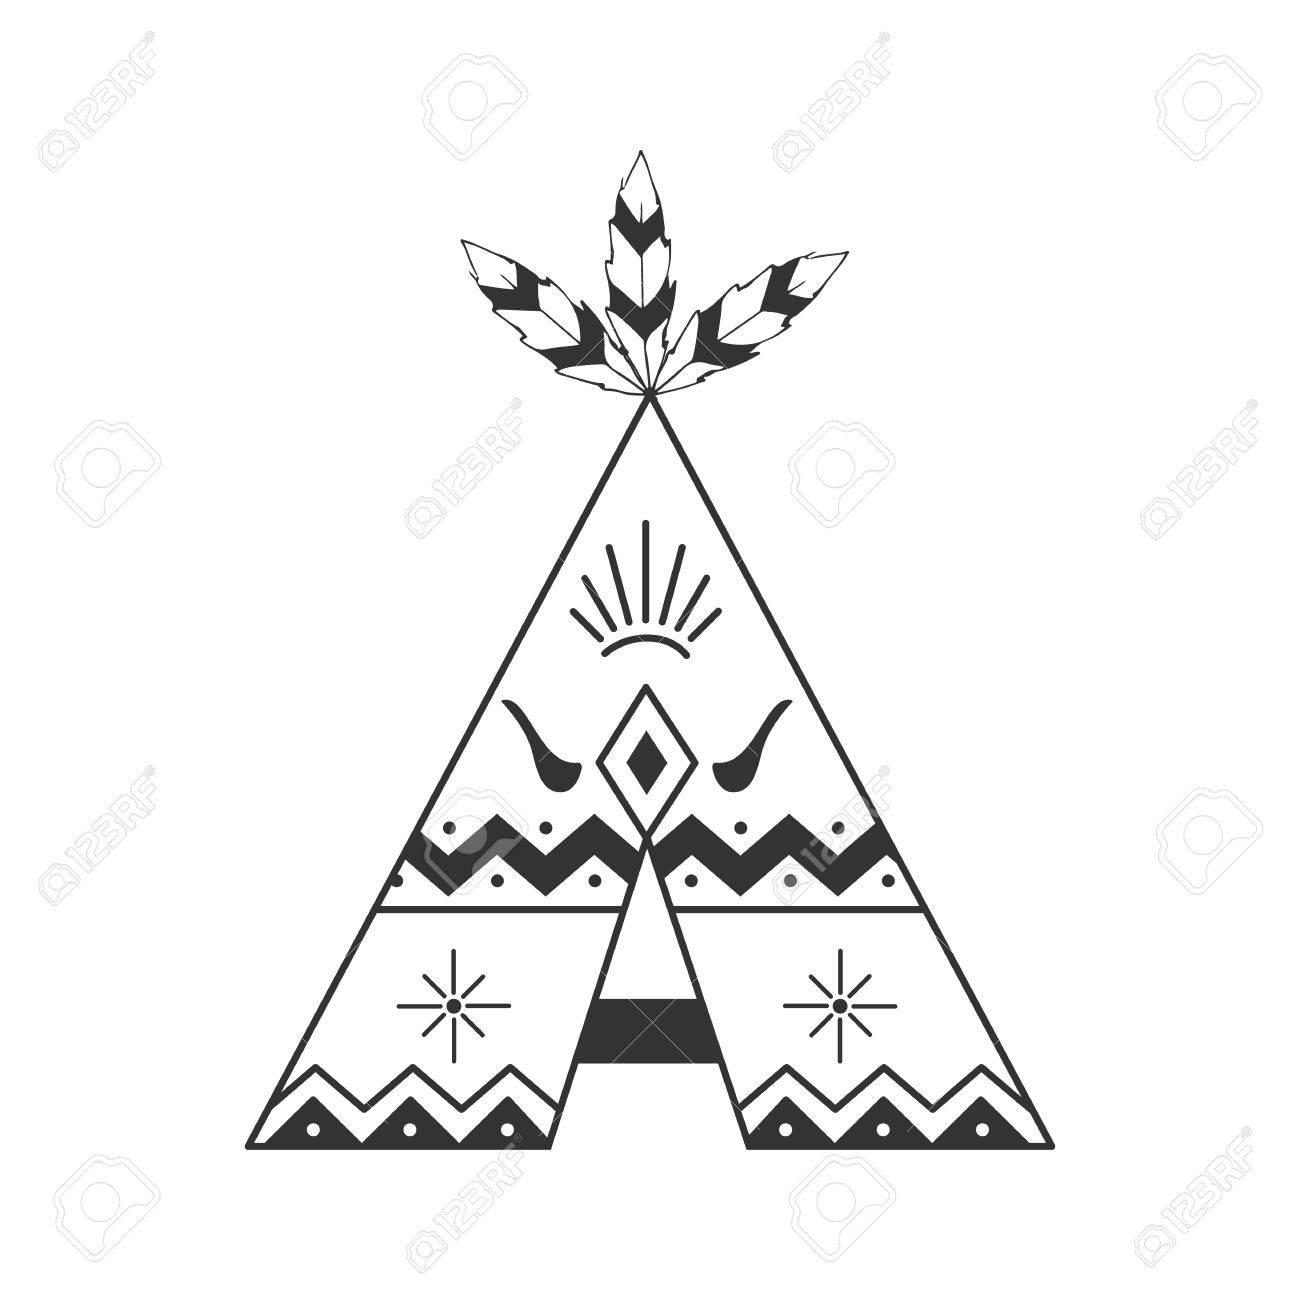 Cute tipi illustration isolated on white with feathers and indian ornaments. Vector wigwam boho style. - 83172819